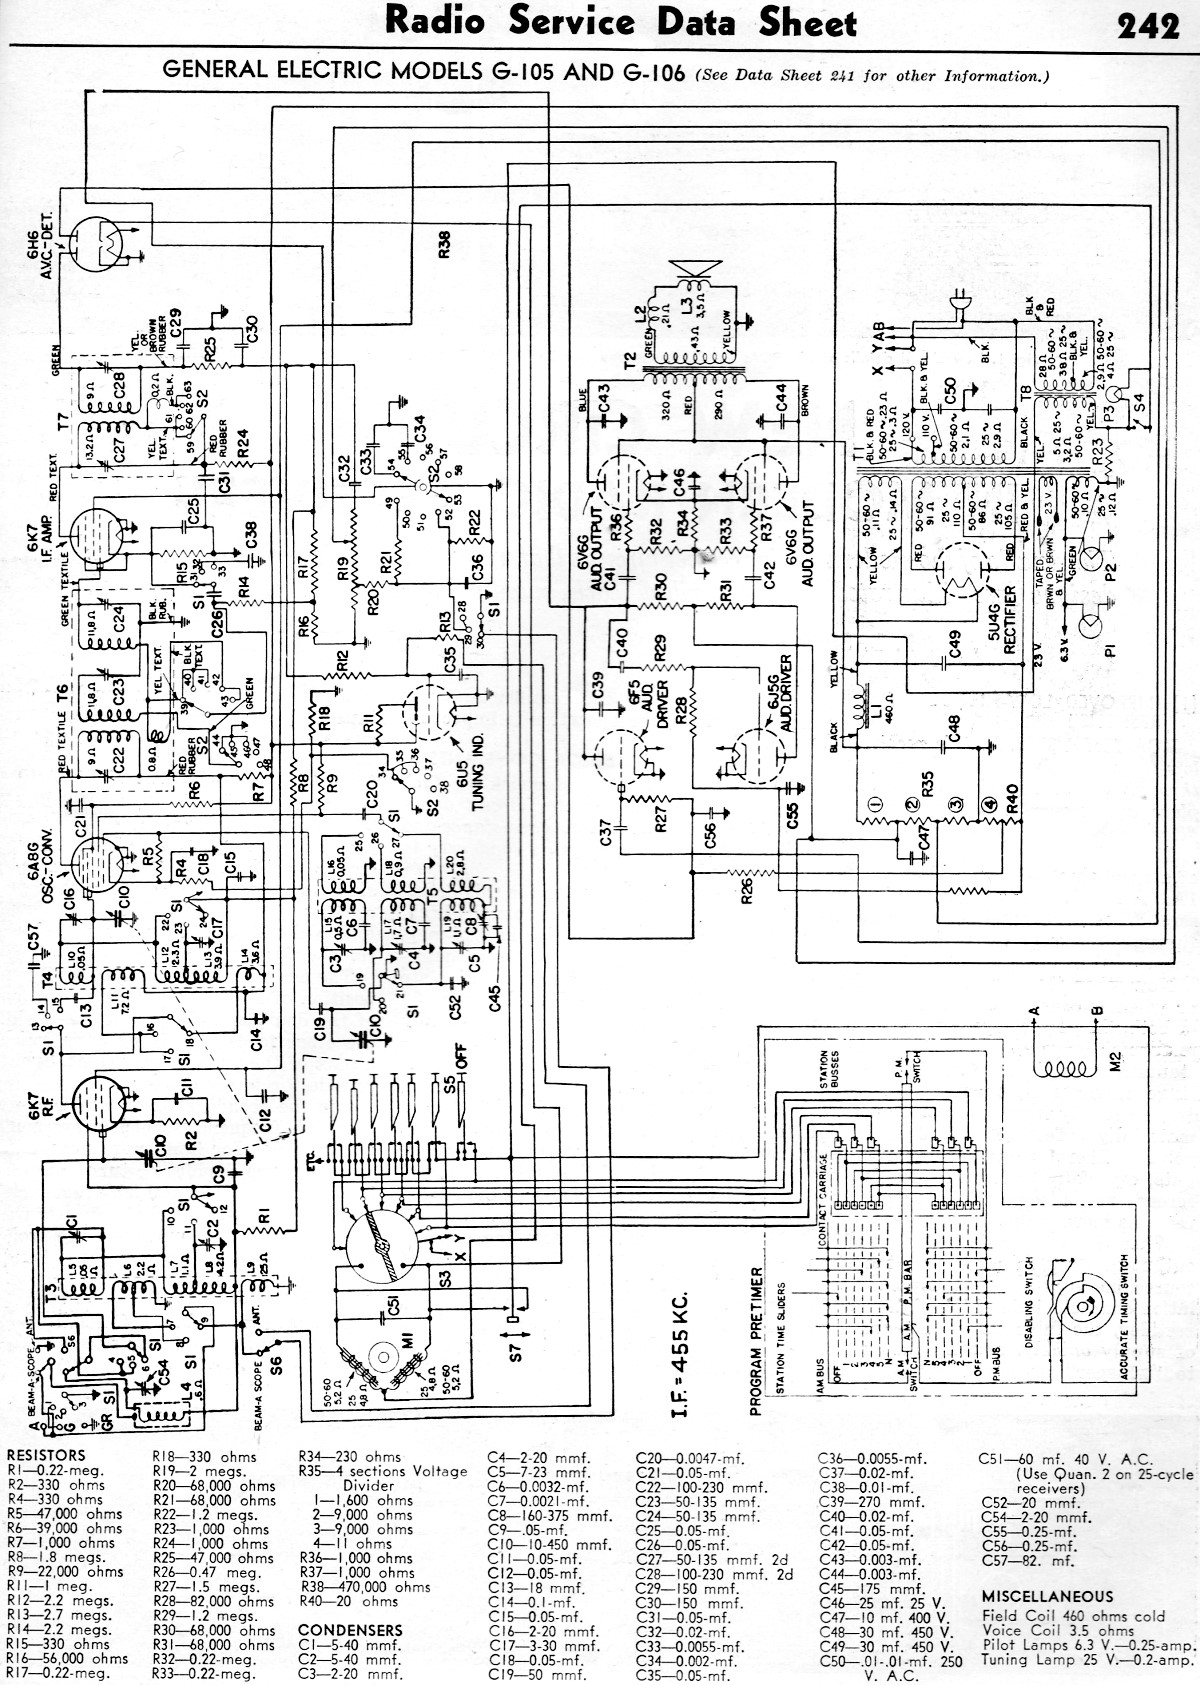 General Electric Models G105 And G106 Radio Service Data Sheet. Rf Cafe. Wiring. Zenith Tube Radio Schematics 1938 At Scoala.co